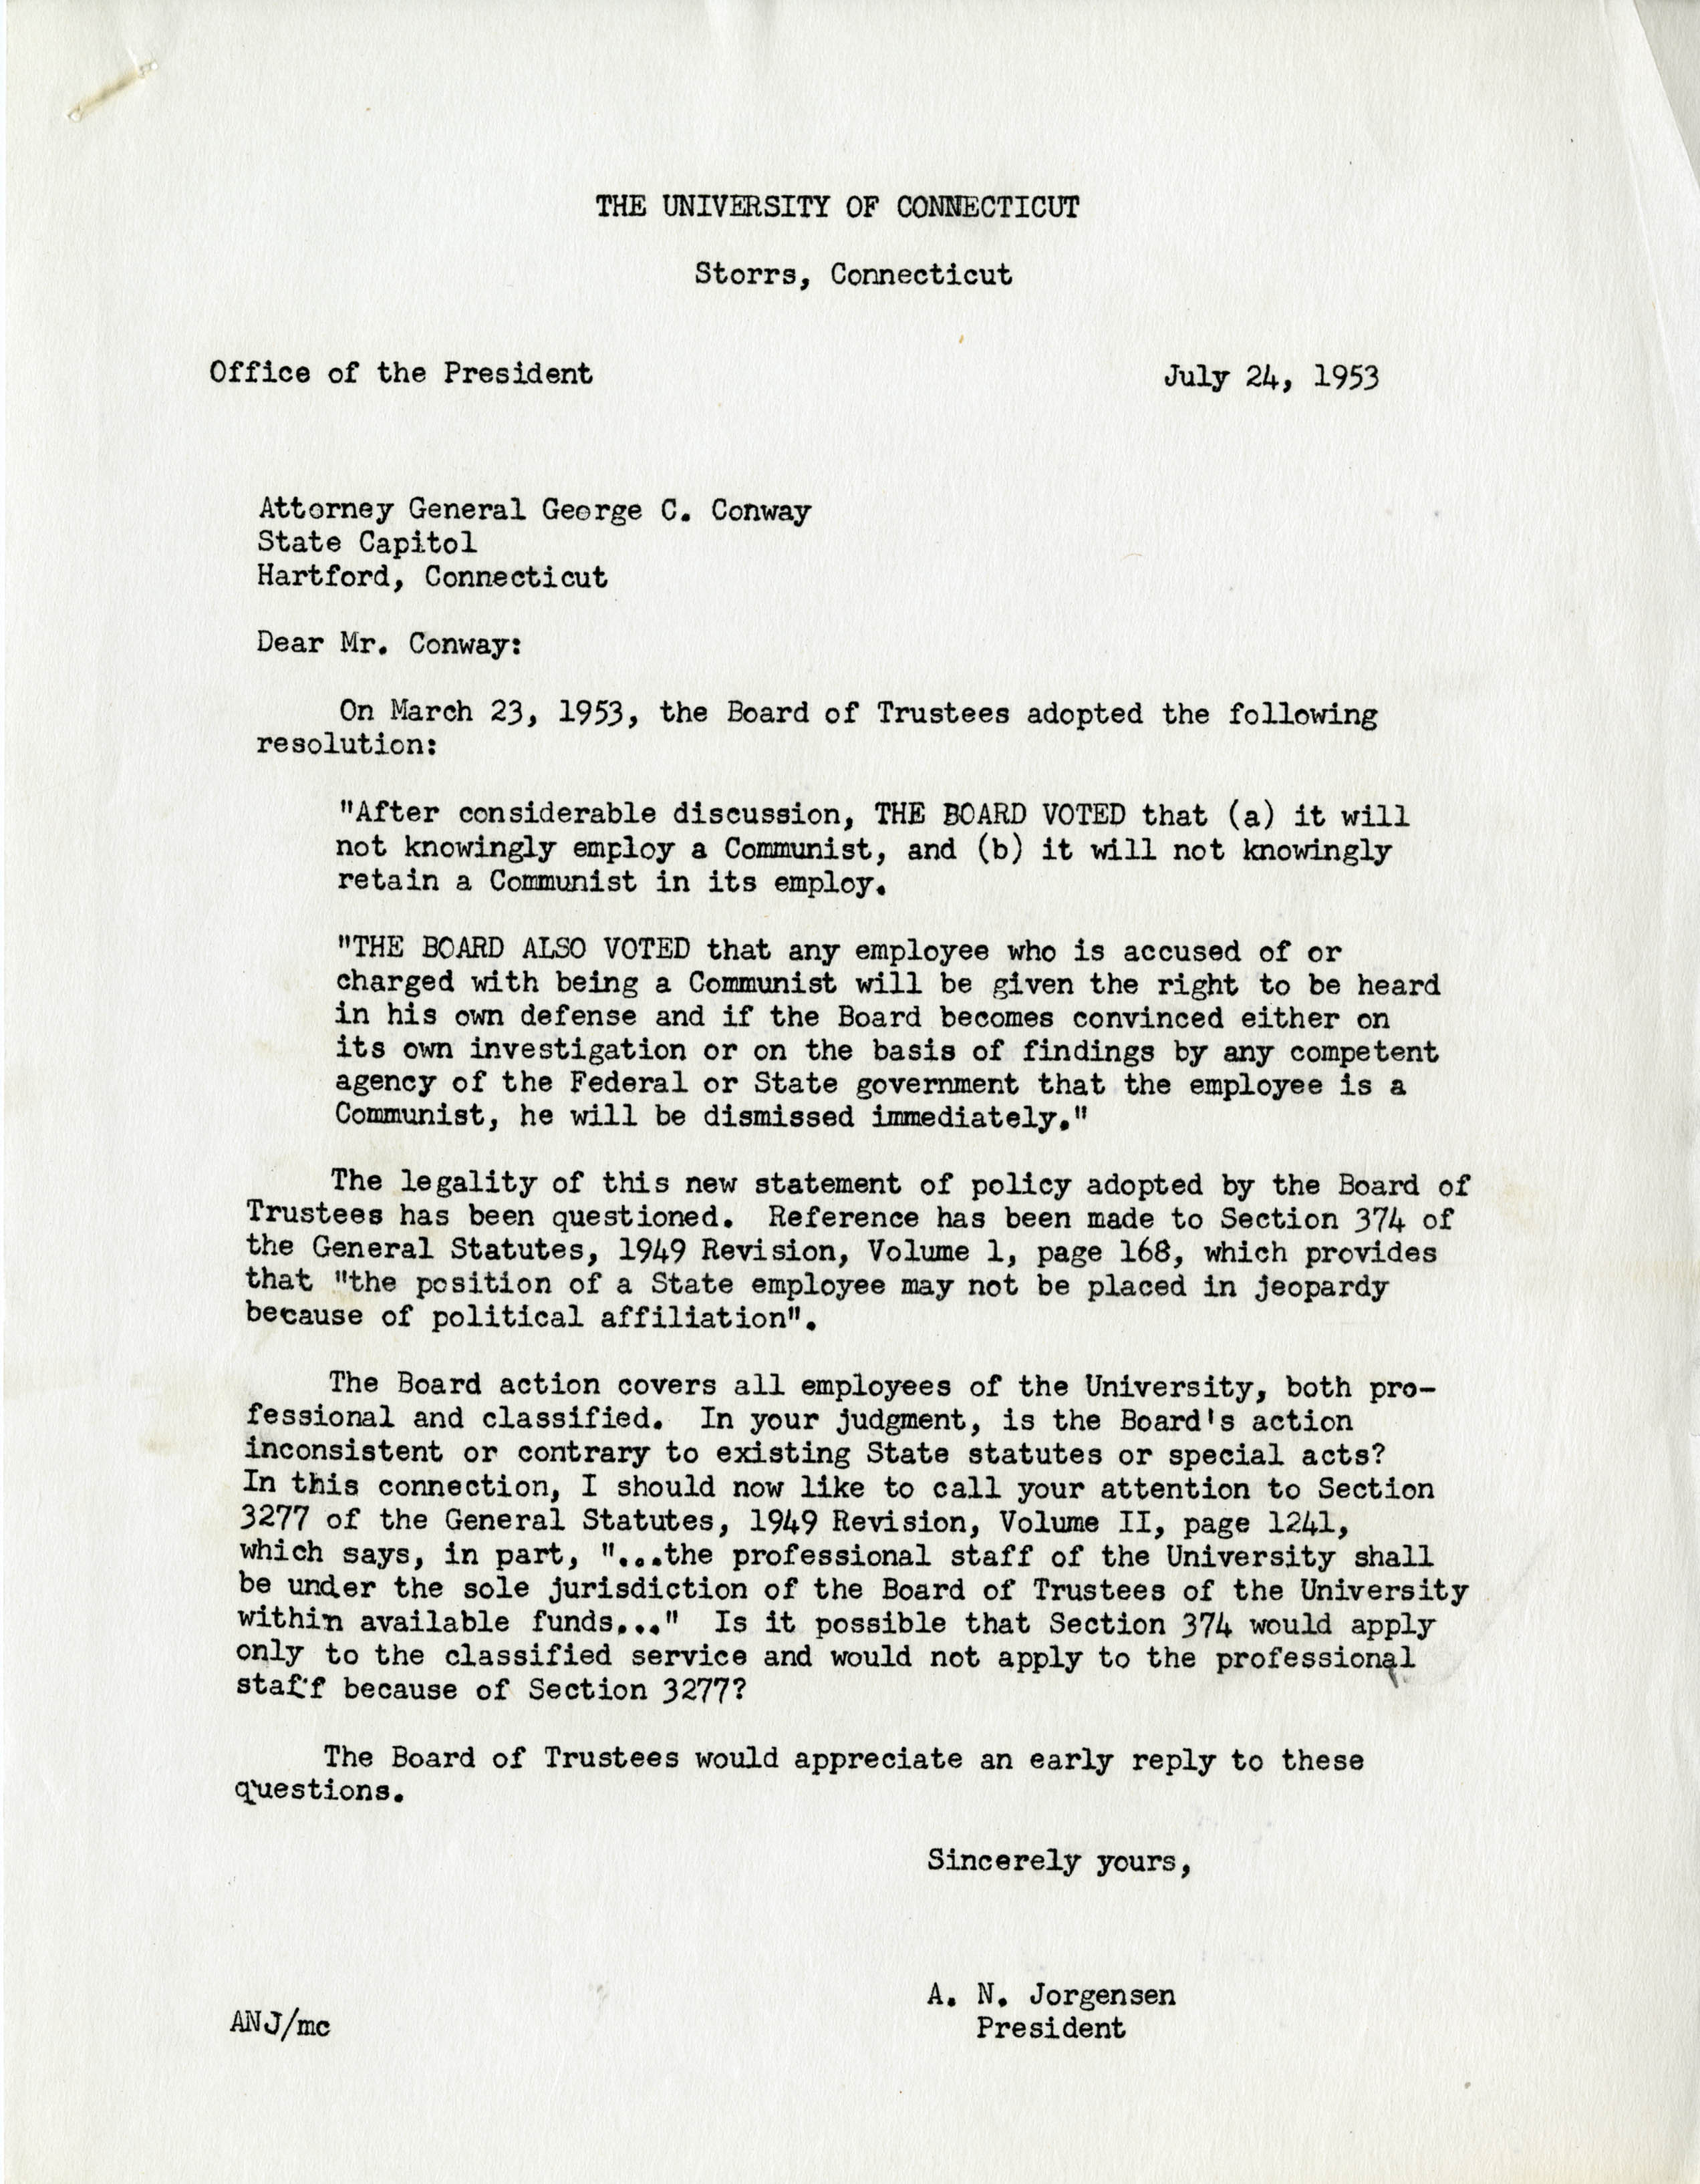 Letter written by UConn President Albert Jorgensen to the Connecticut Attorney General stating that the Board of Trustees voted that any emploee who is accused of or charges with being a Communist will be given the right to be heard in his own defense.